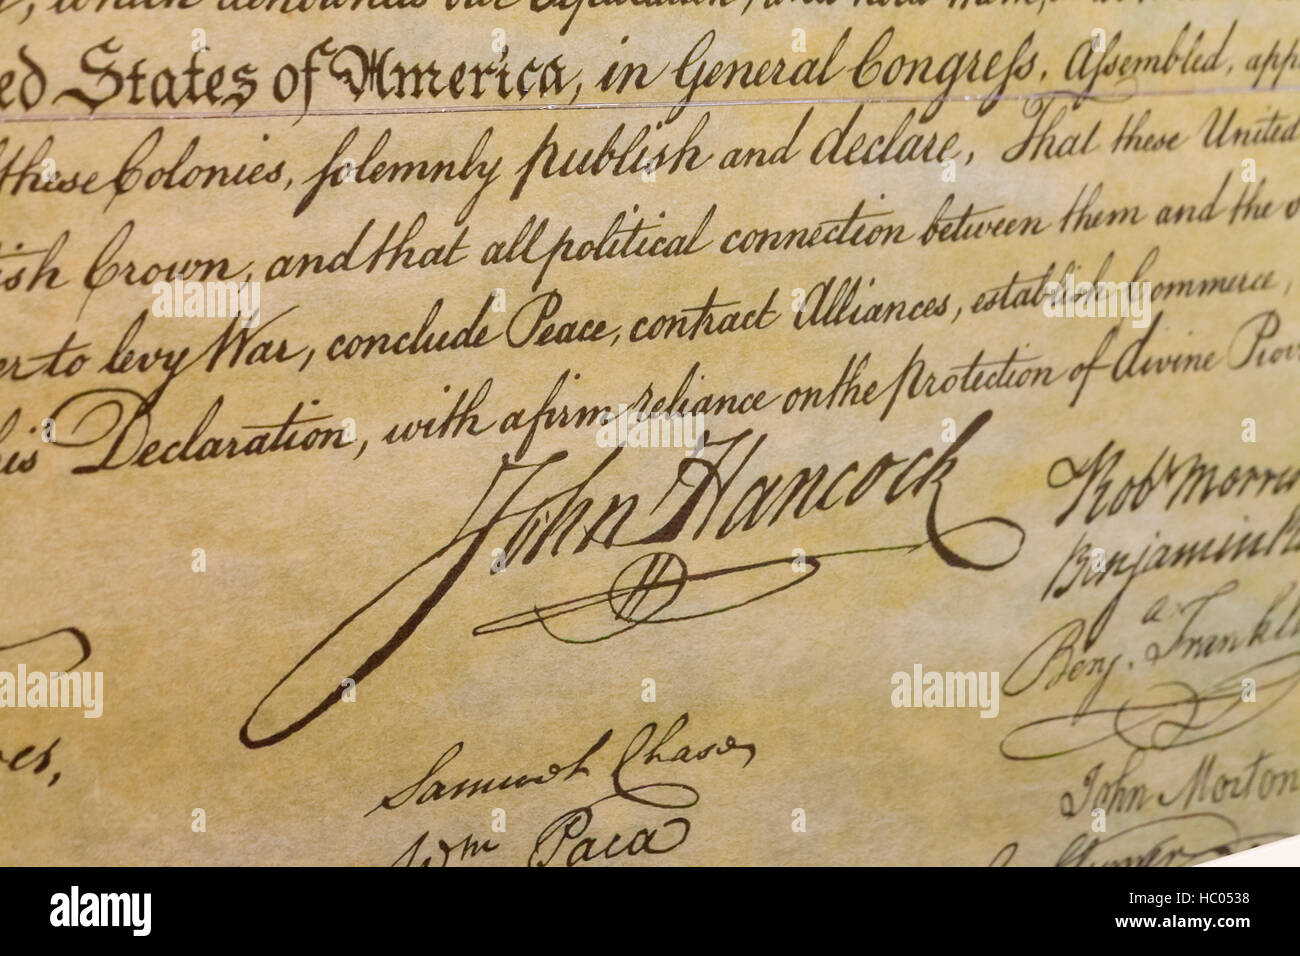 John Hancock signature as shown on the engrossed copy of the US Declaration of Independence - Stock Image